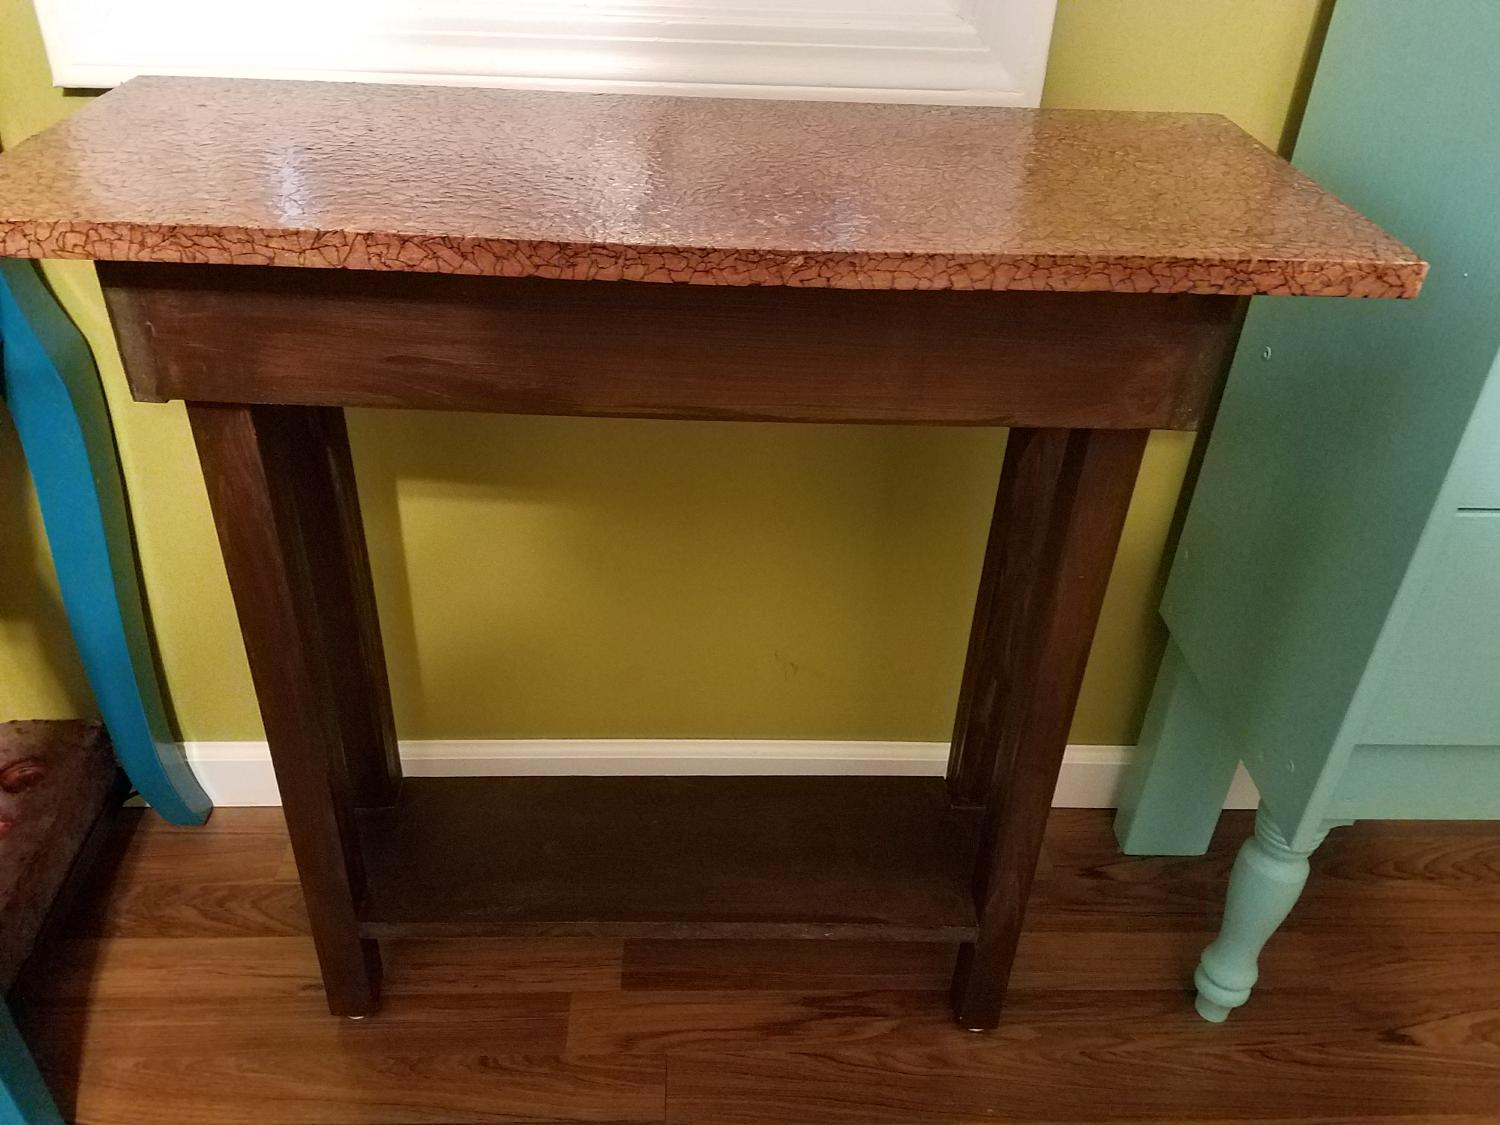 Find More Handmade Faux Cork Table For Sale At Up To 90 Off Sumter Sc